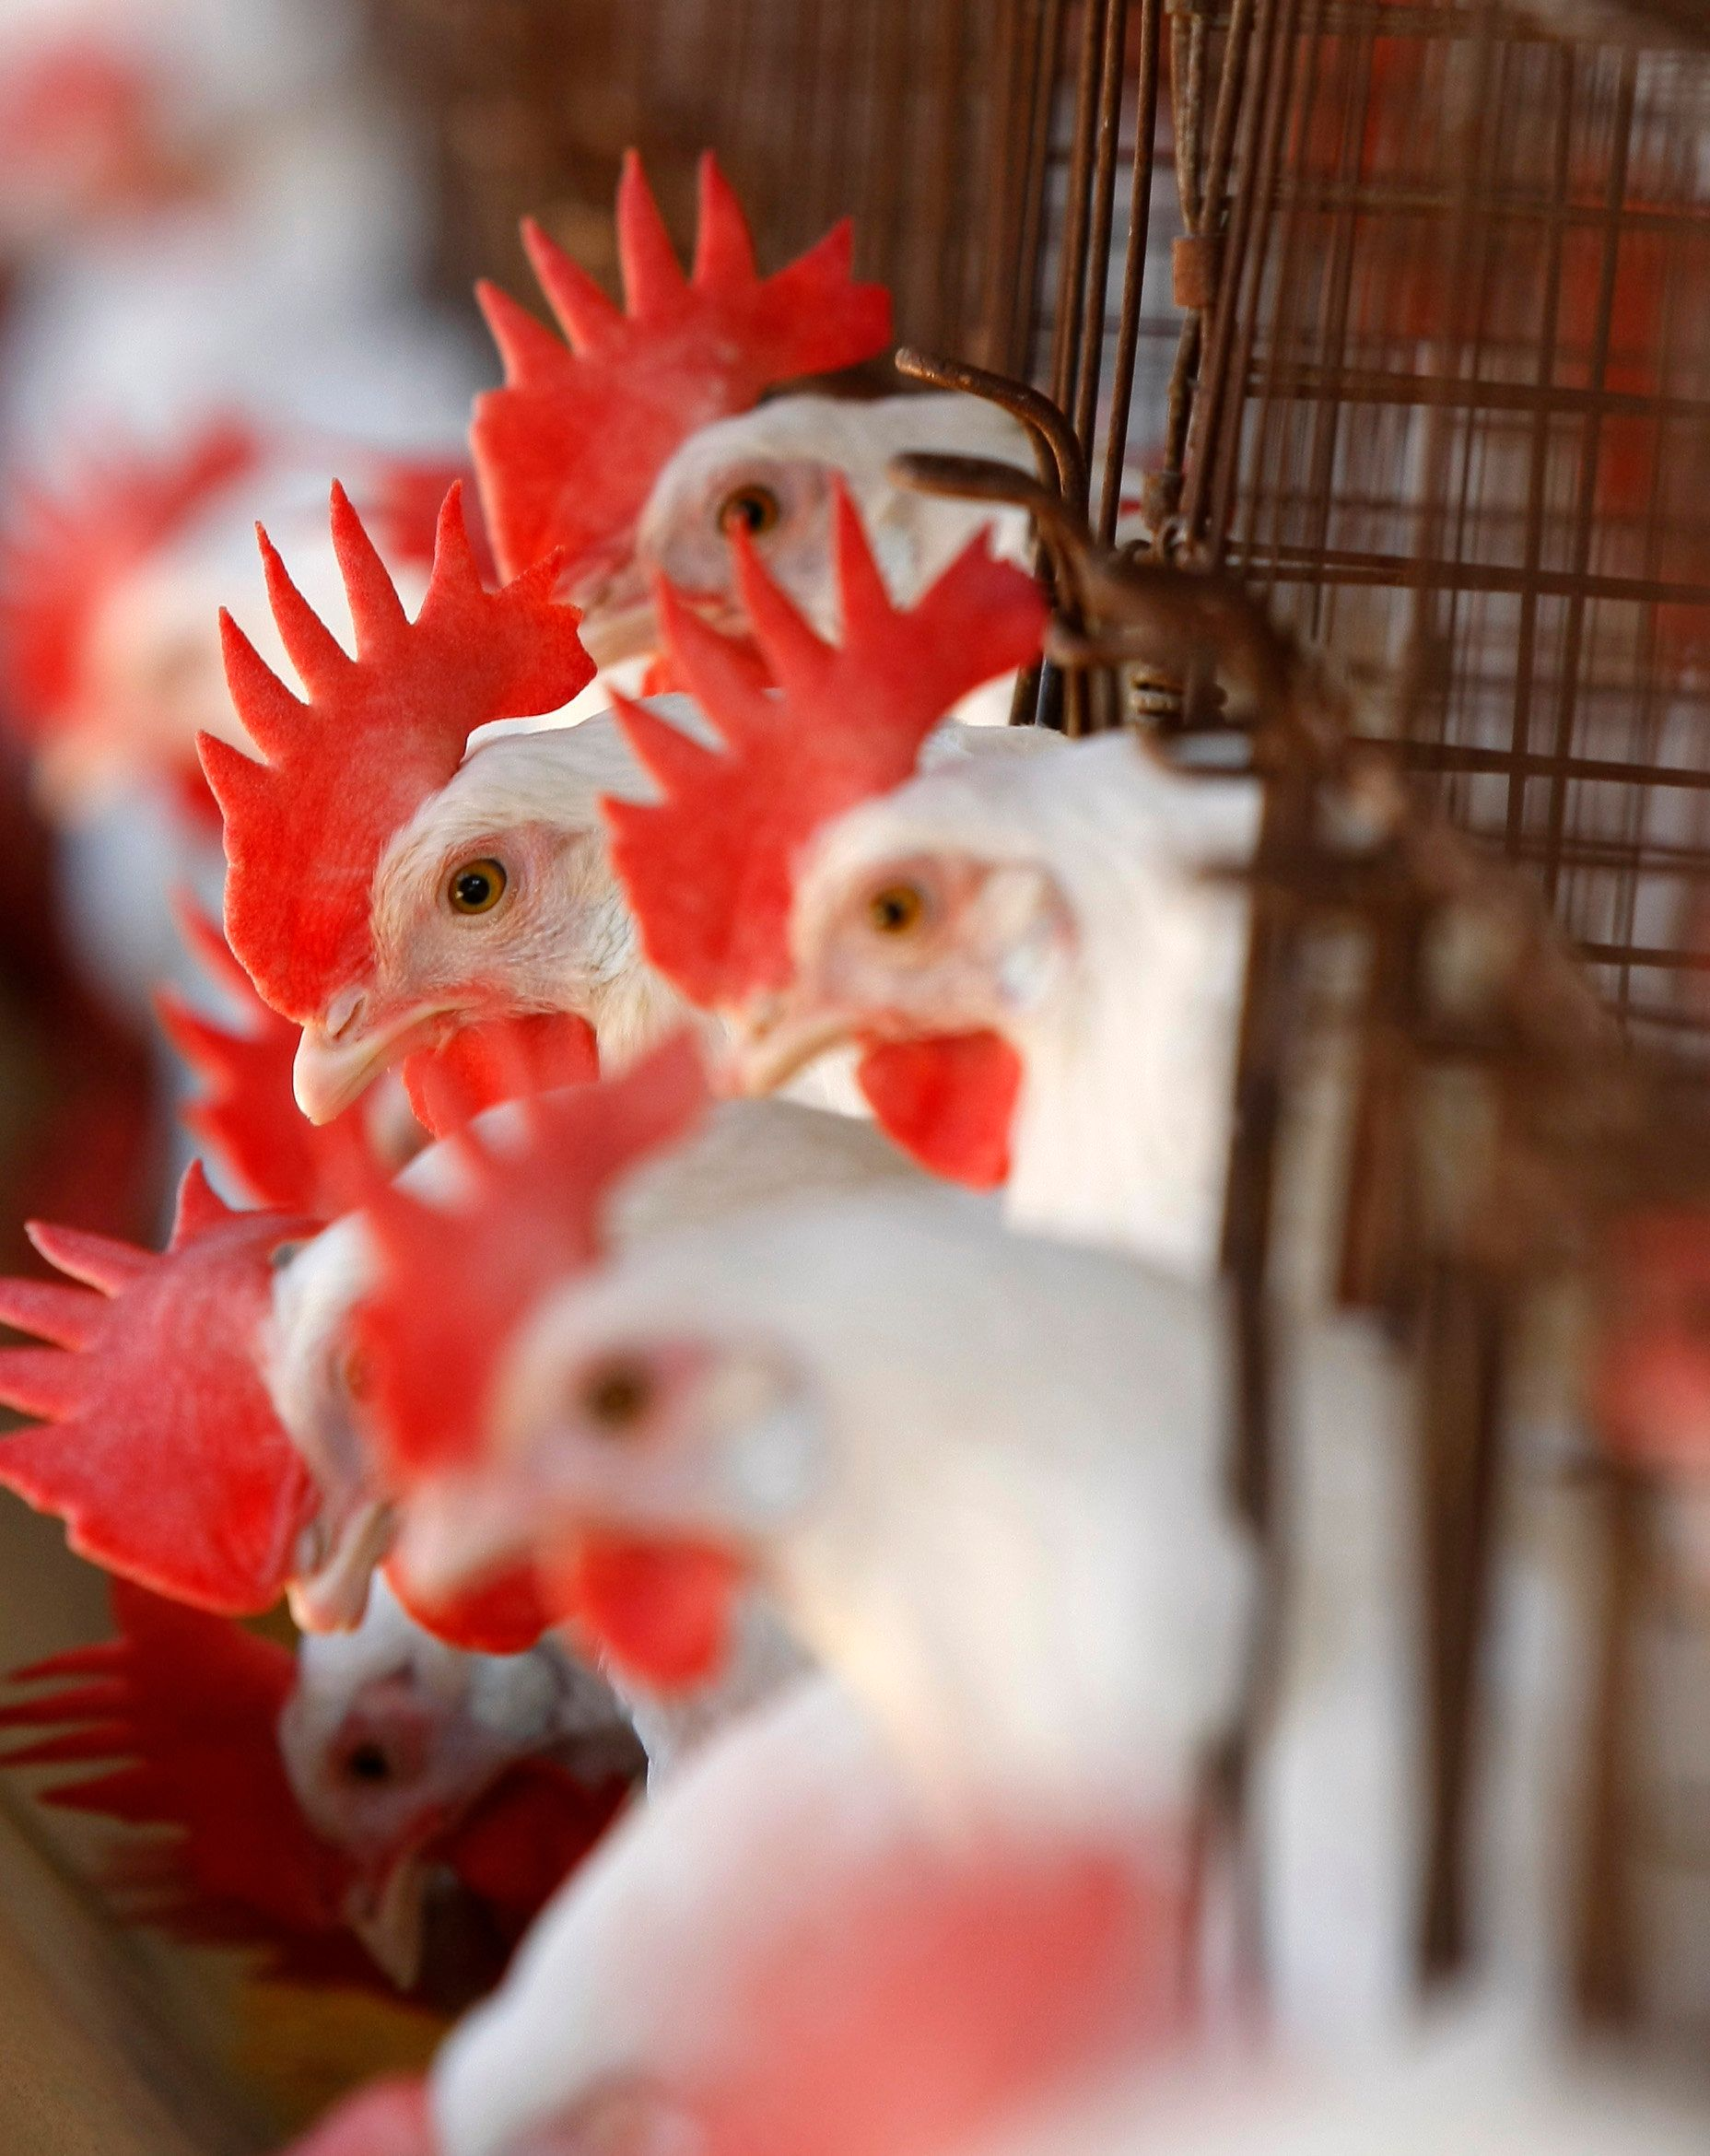 Caged hens feed at an egg farm in San Diego County in this picture taken July 29, 2008. A fierce battle looming in California between animal rights campaigners and egg producers over the welfare of caged hens could crack the state's $300 million egg production industry. Picture taken July 29.      REUTERS/Mike Blake      (UNITED STATES)